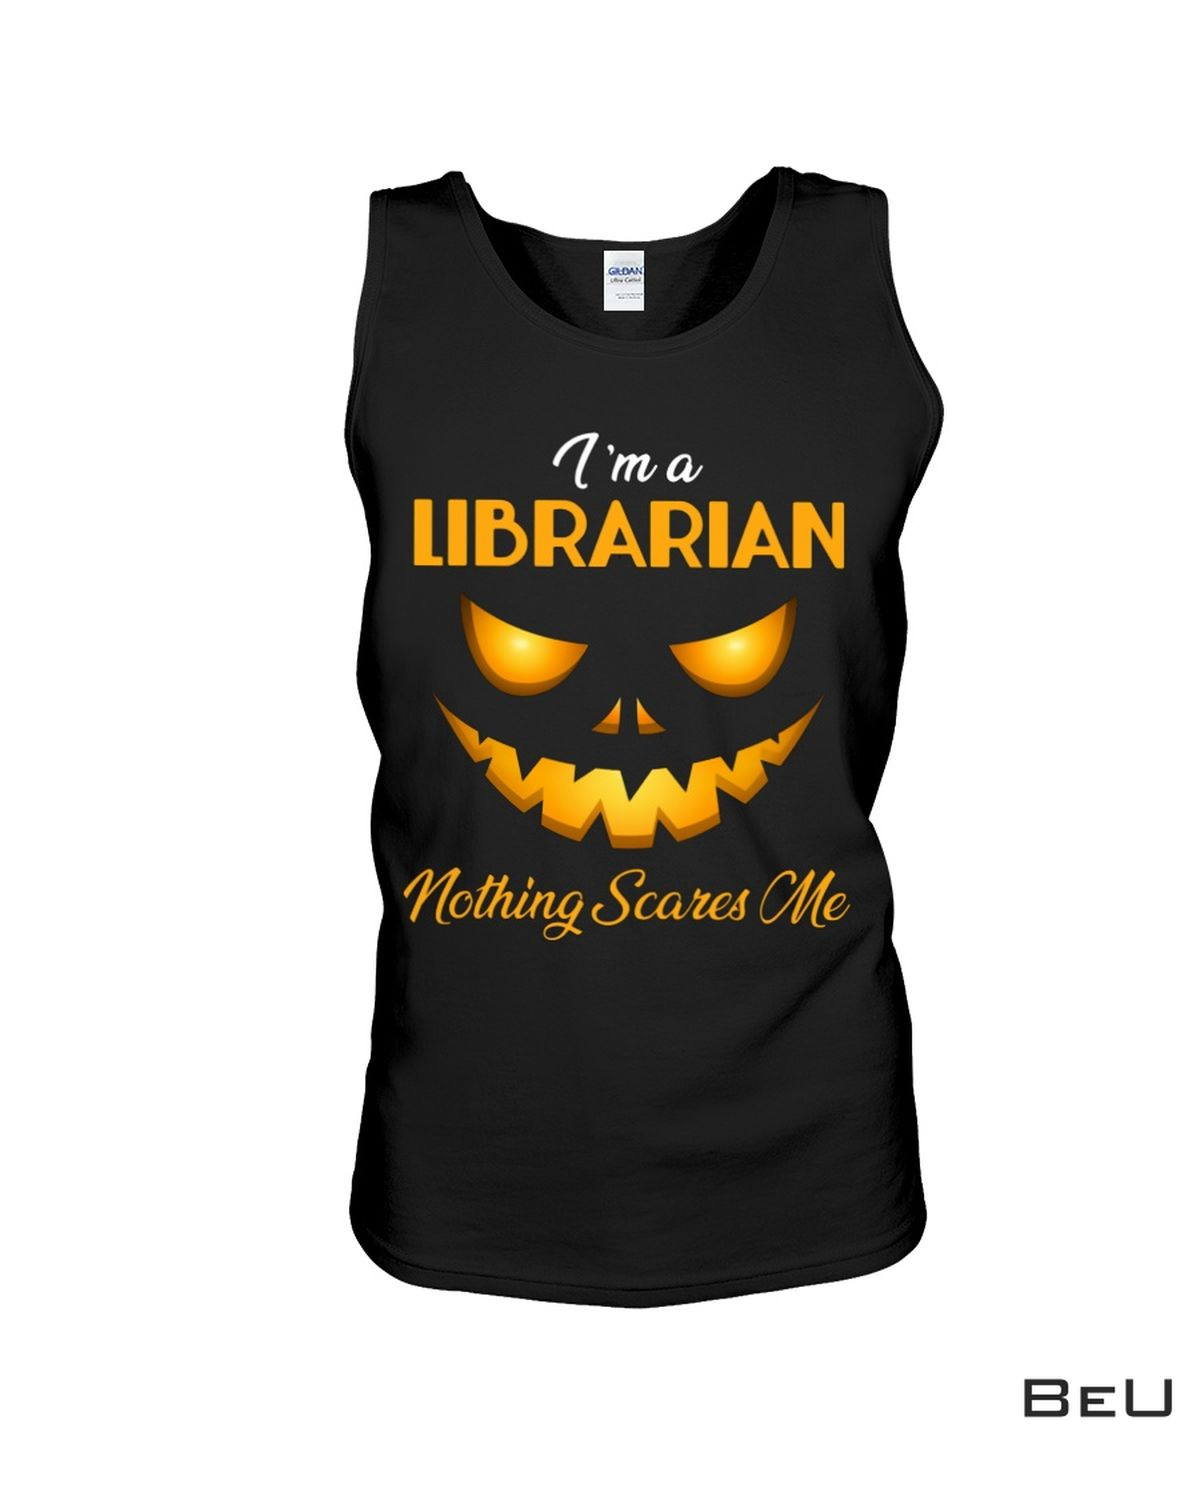 Ships From USA I'm A Librarian Nothing Scares Me Shirt